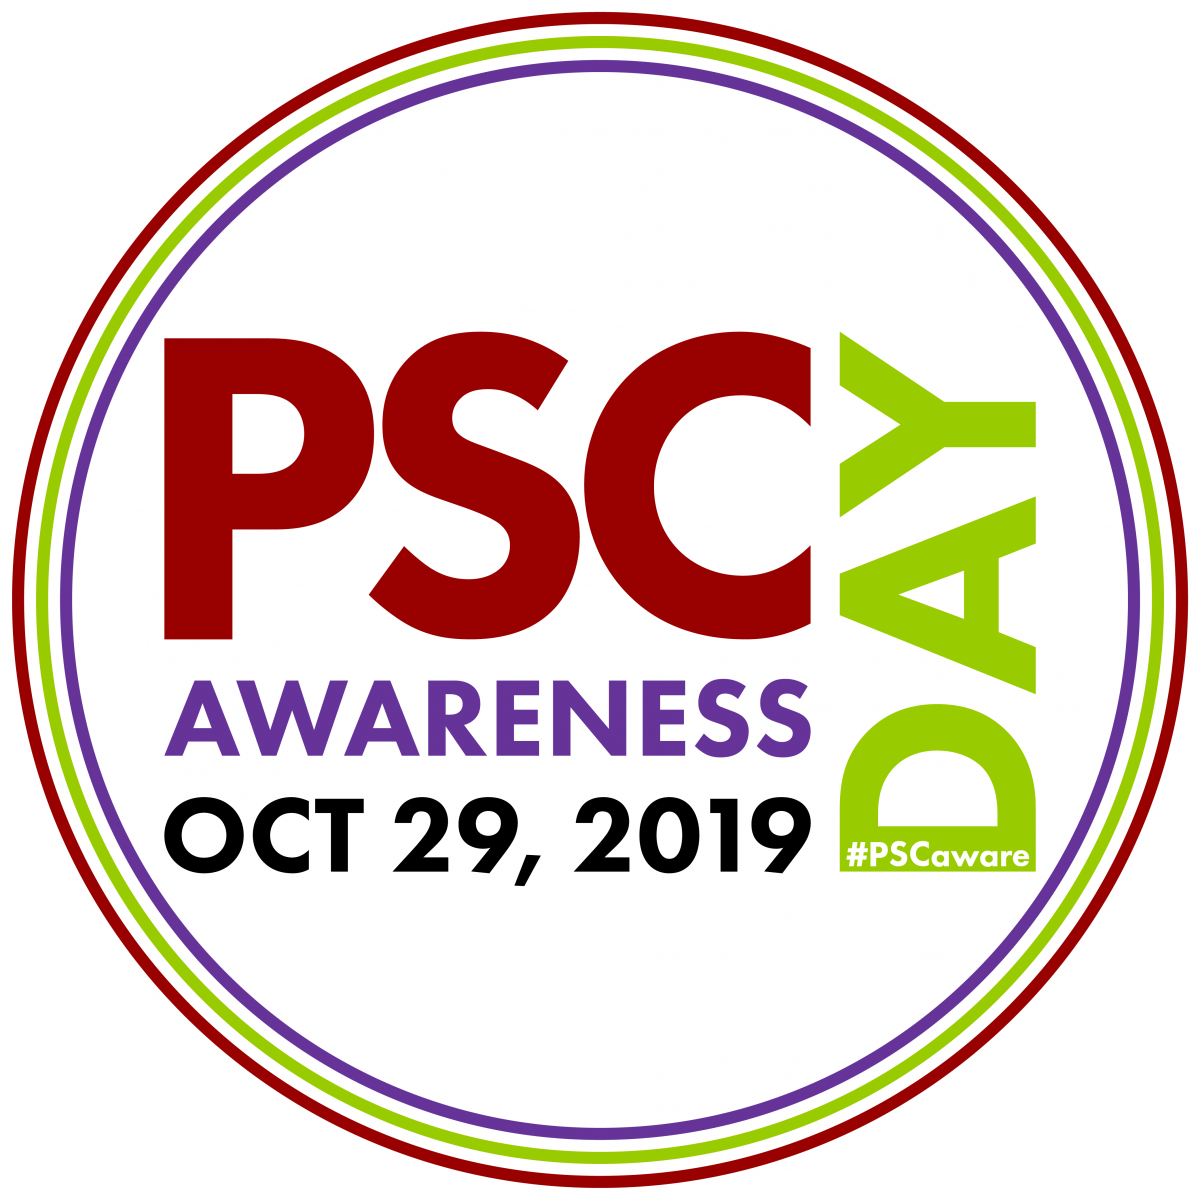 Say thank you to groups that are helping folks with PSC on Awareness Day!